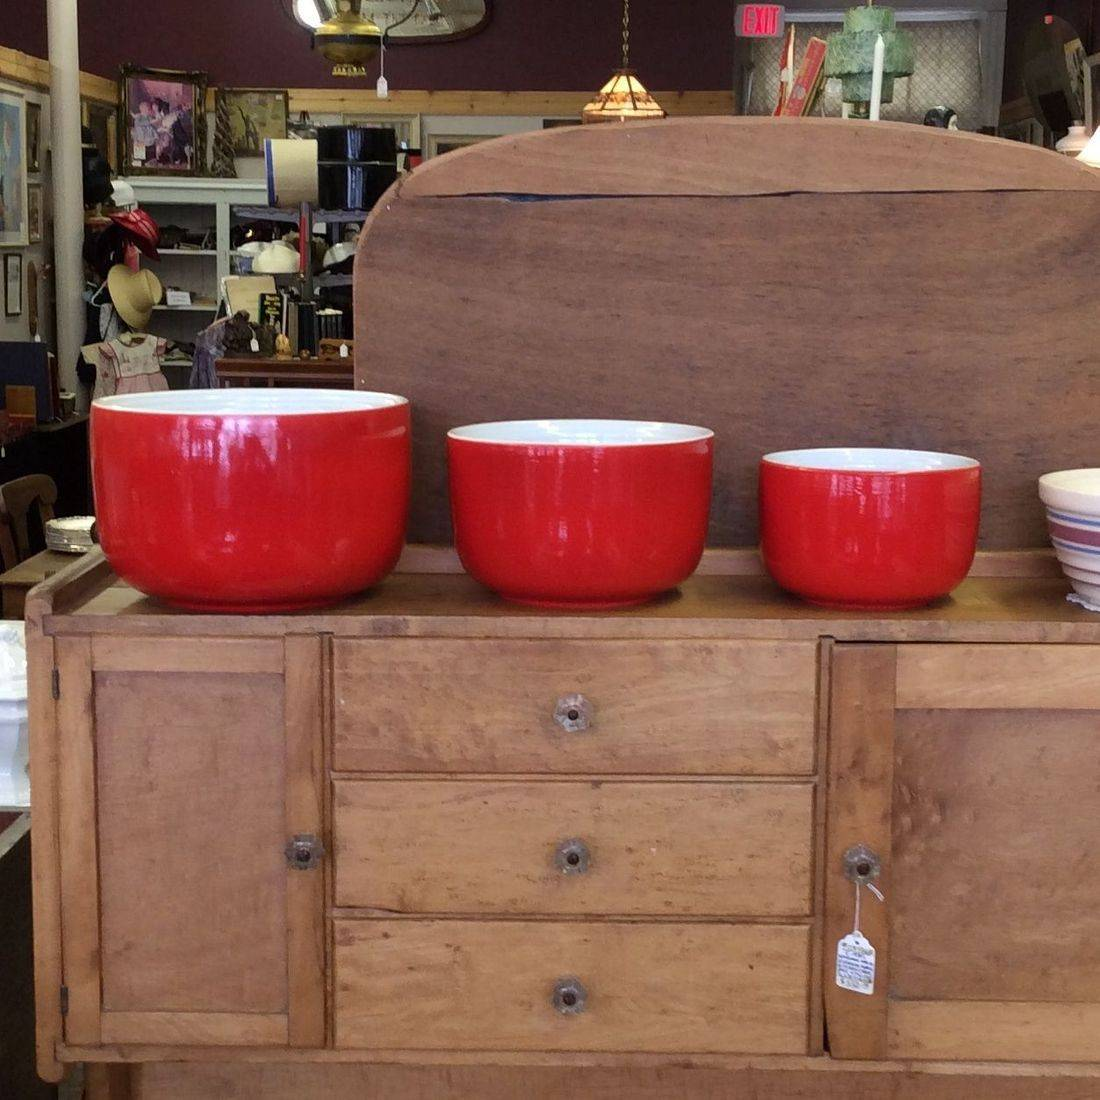 "3-Pc. Hall Superior Red, Straight-Sided Mixing Bowl Set - 8-3/4"" - 7-1/2"" - 6""   $95.00"